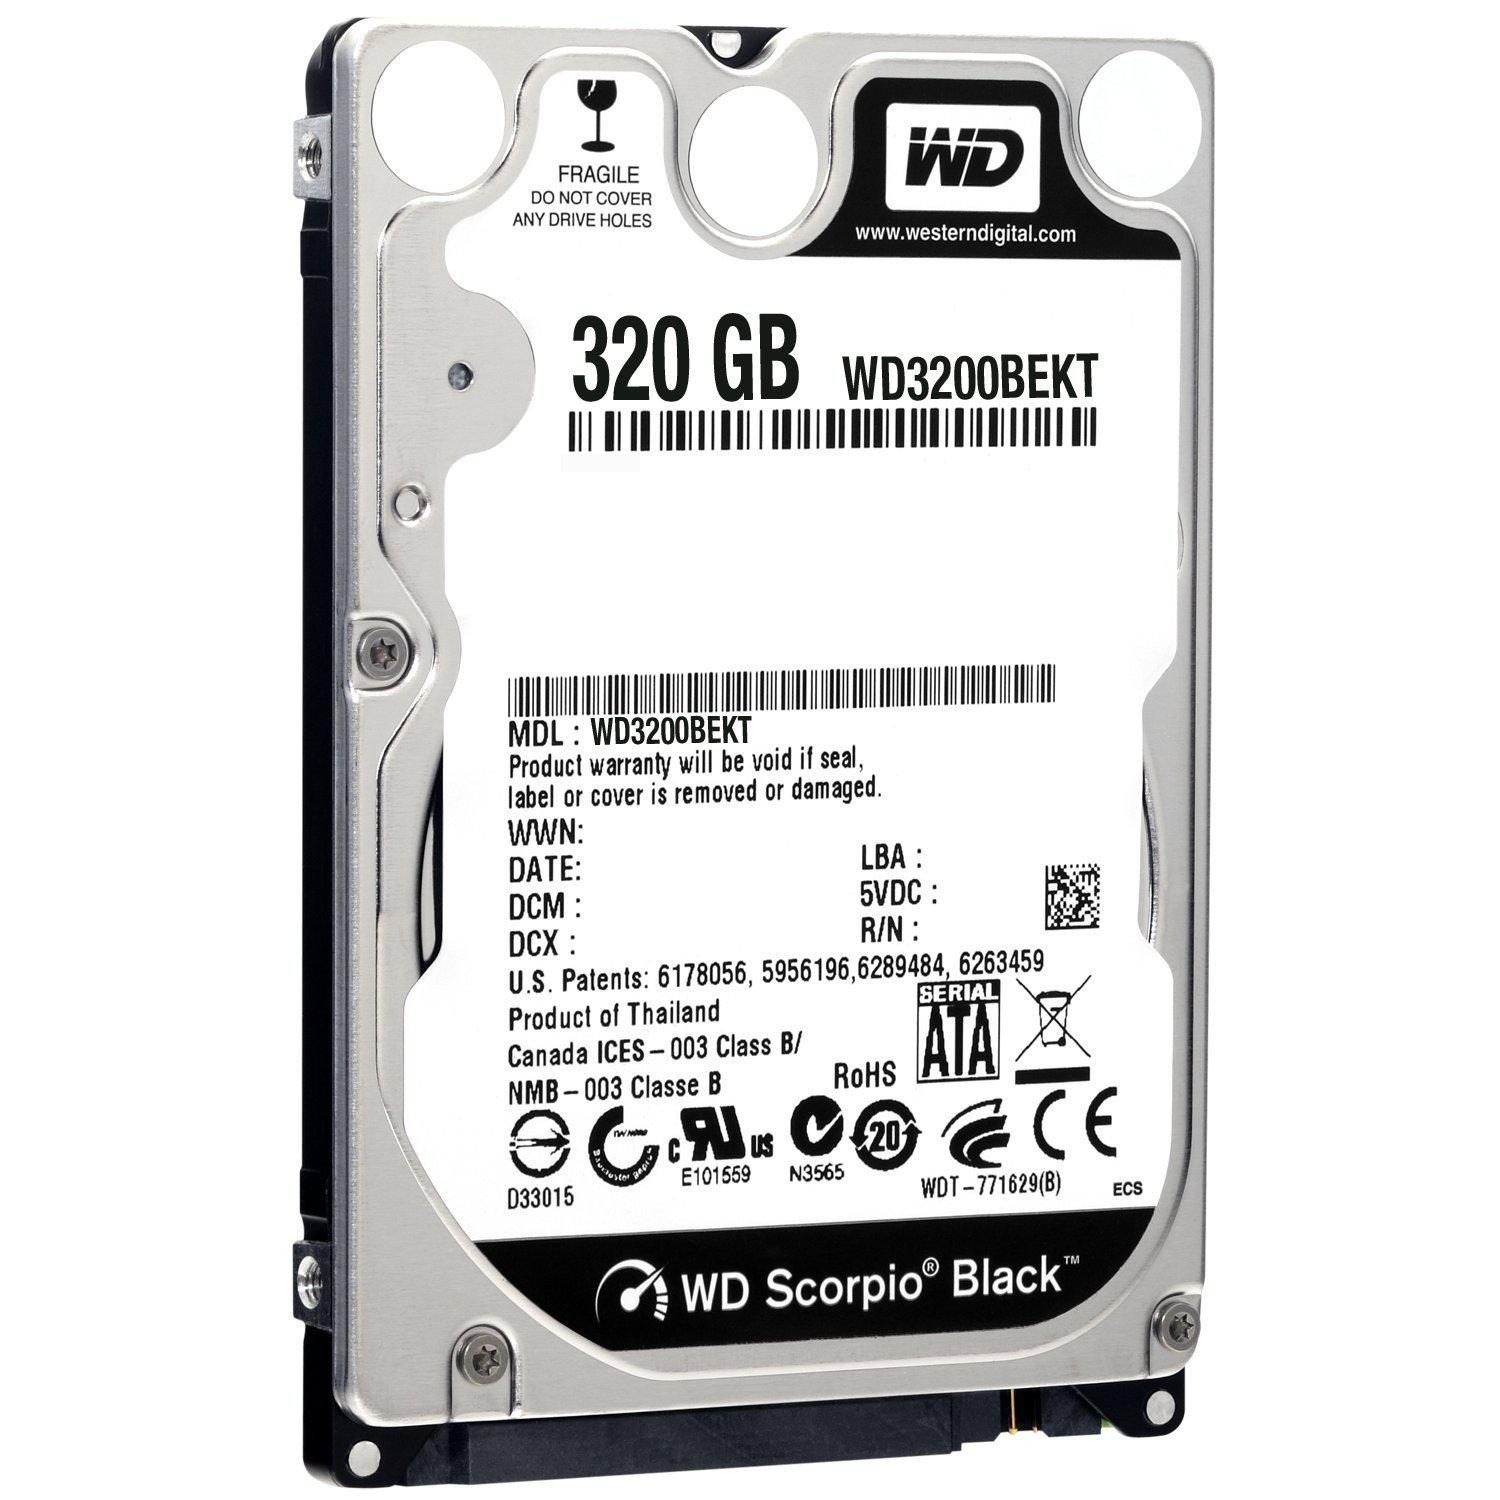 "WD Scorpio Black 320GB 7200RPM SATA Laptop 2.5"" Hard Drive"